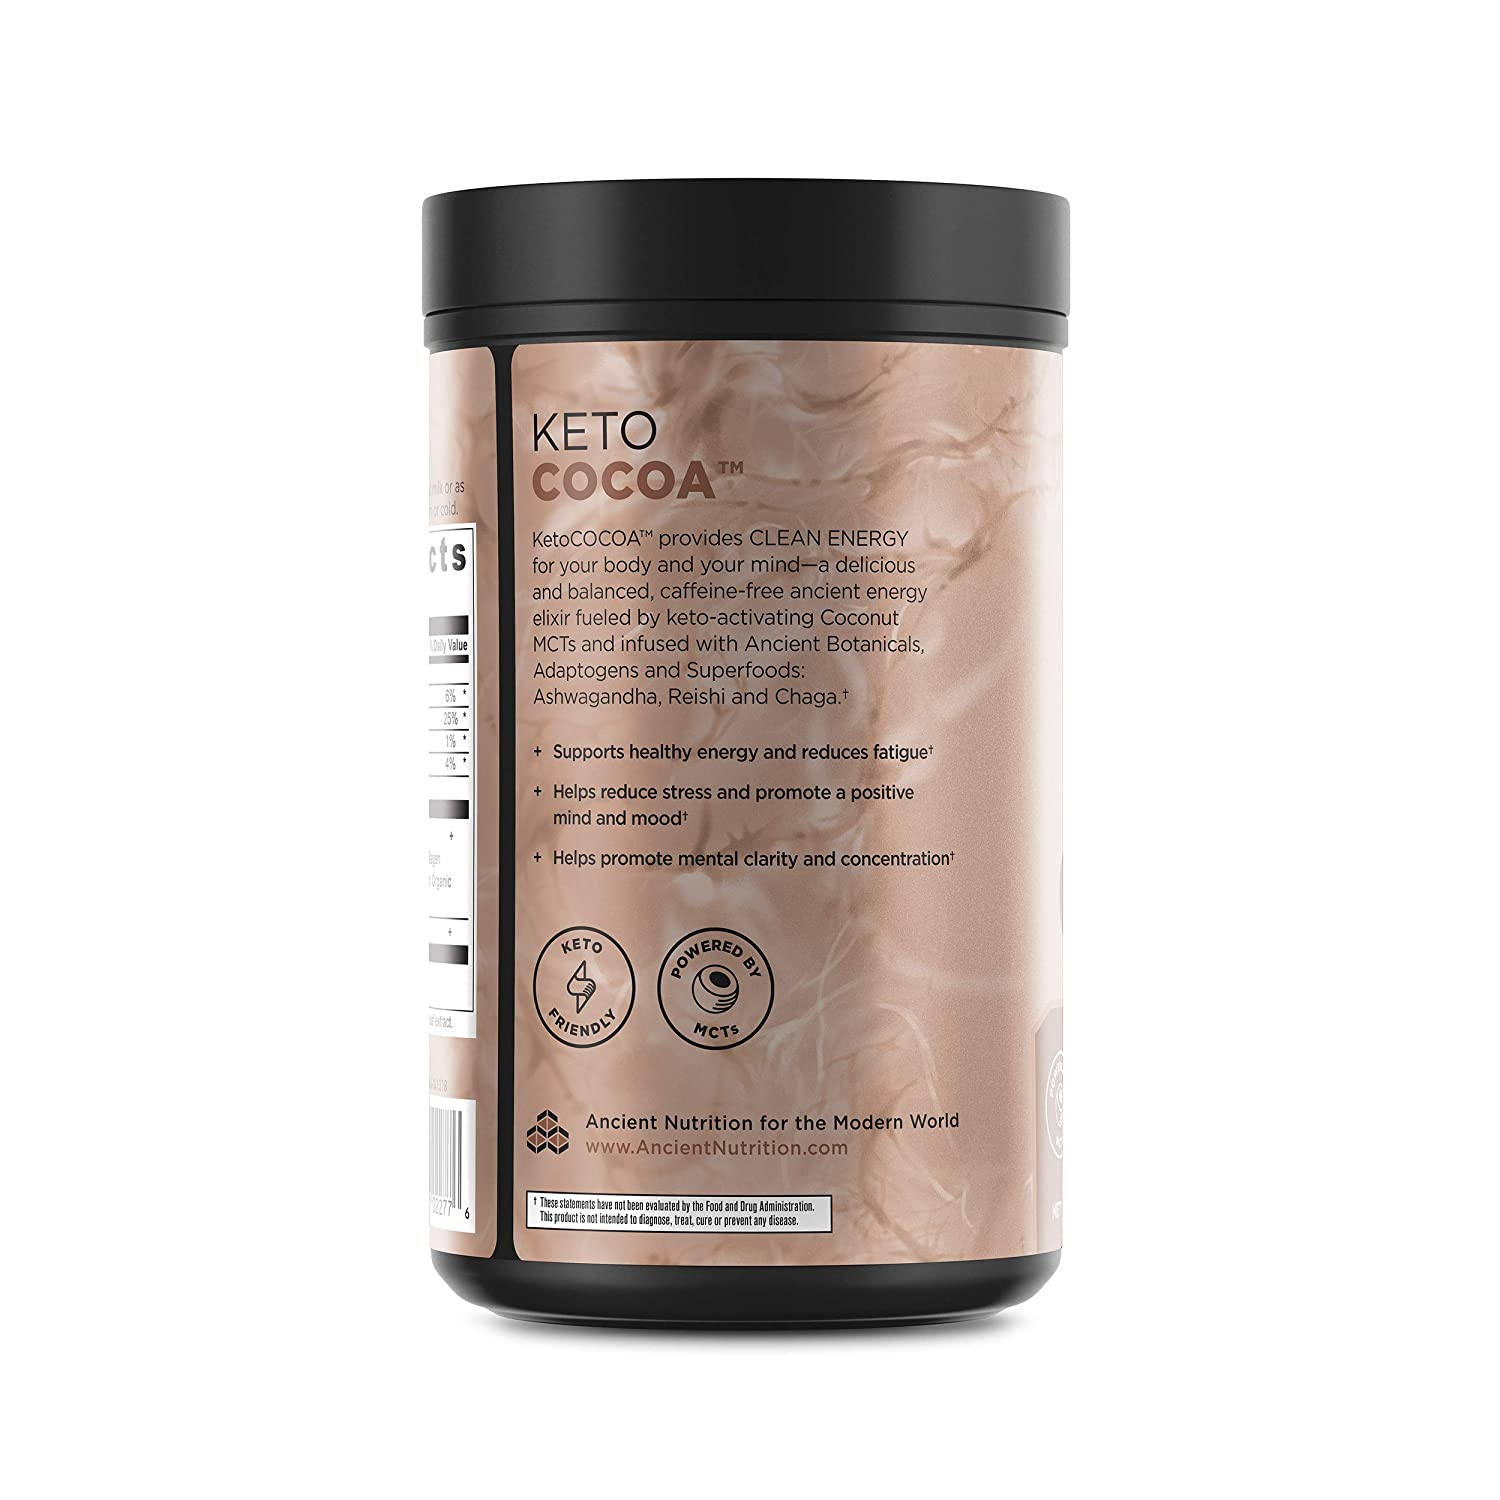 Amazon.com: Ancient Nutrition KetoCOCOA Energy Elixir Powder, 20 Servings, Keto Diet Supplement, Hydrolyzed Collagen Peptides, MCTs from Coconut, ...